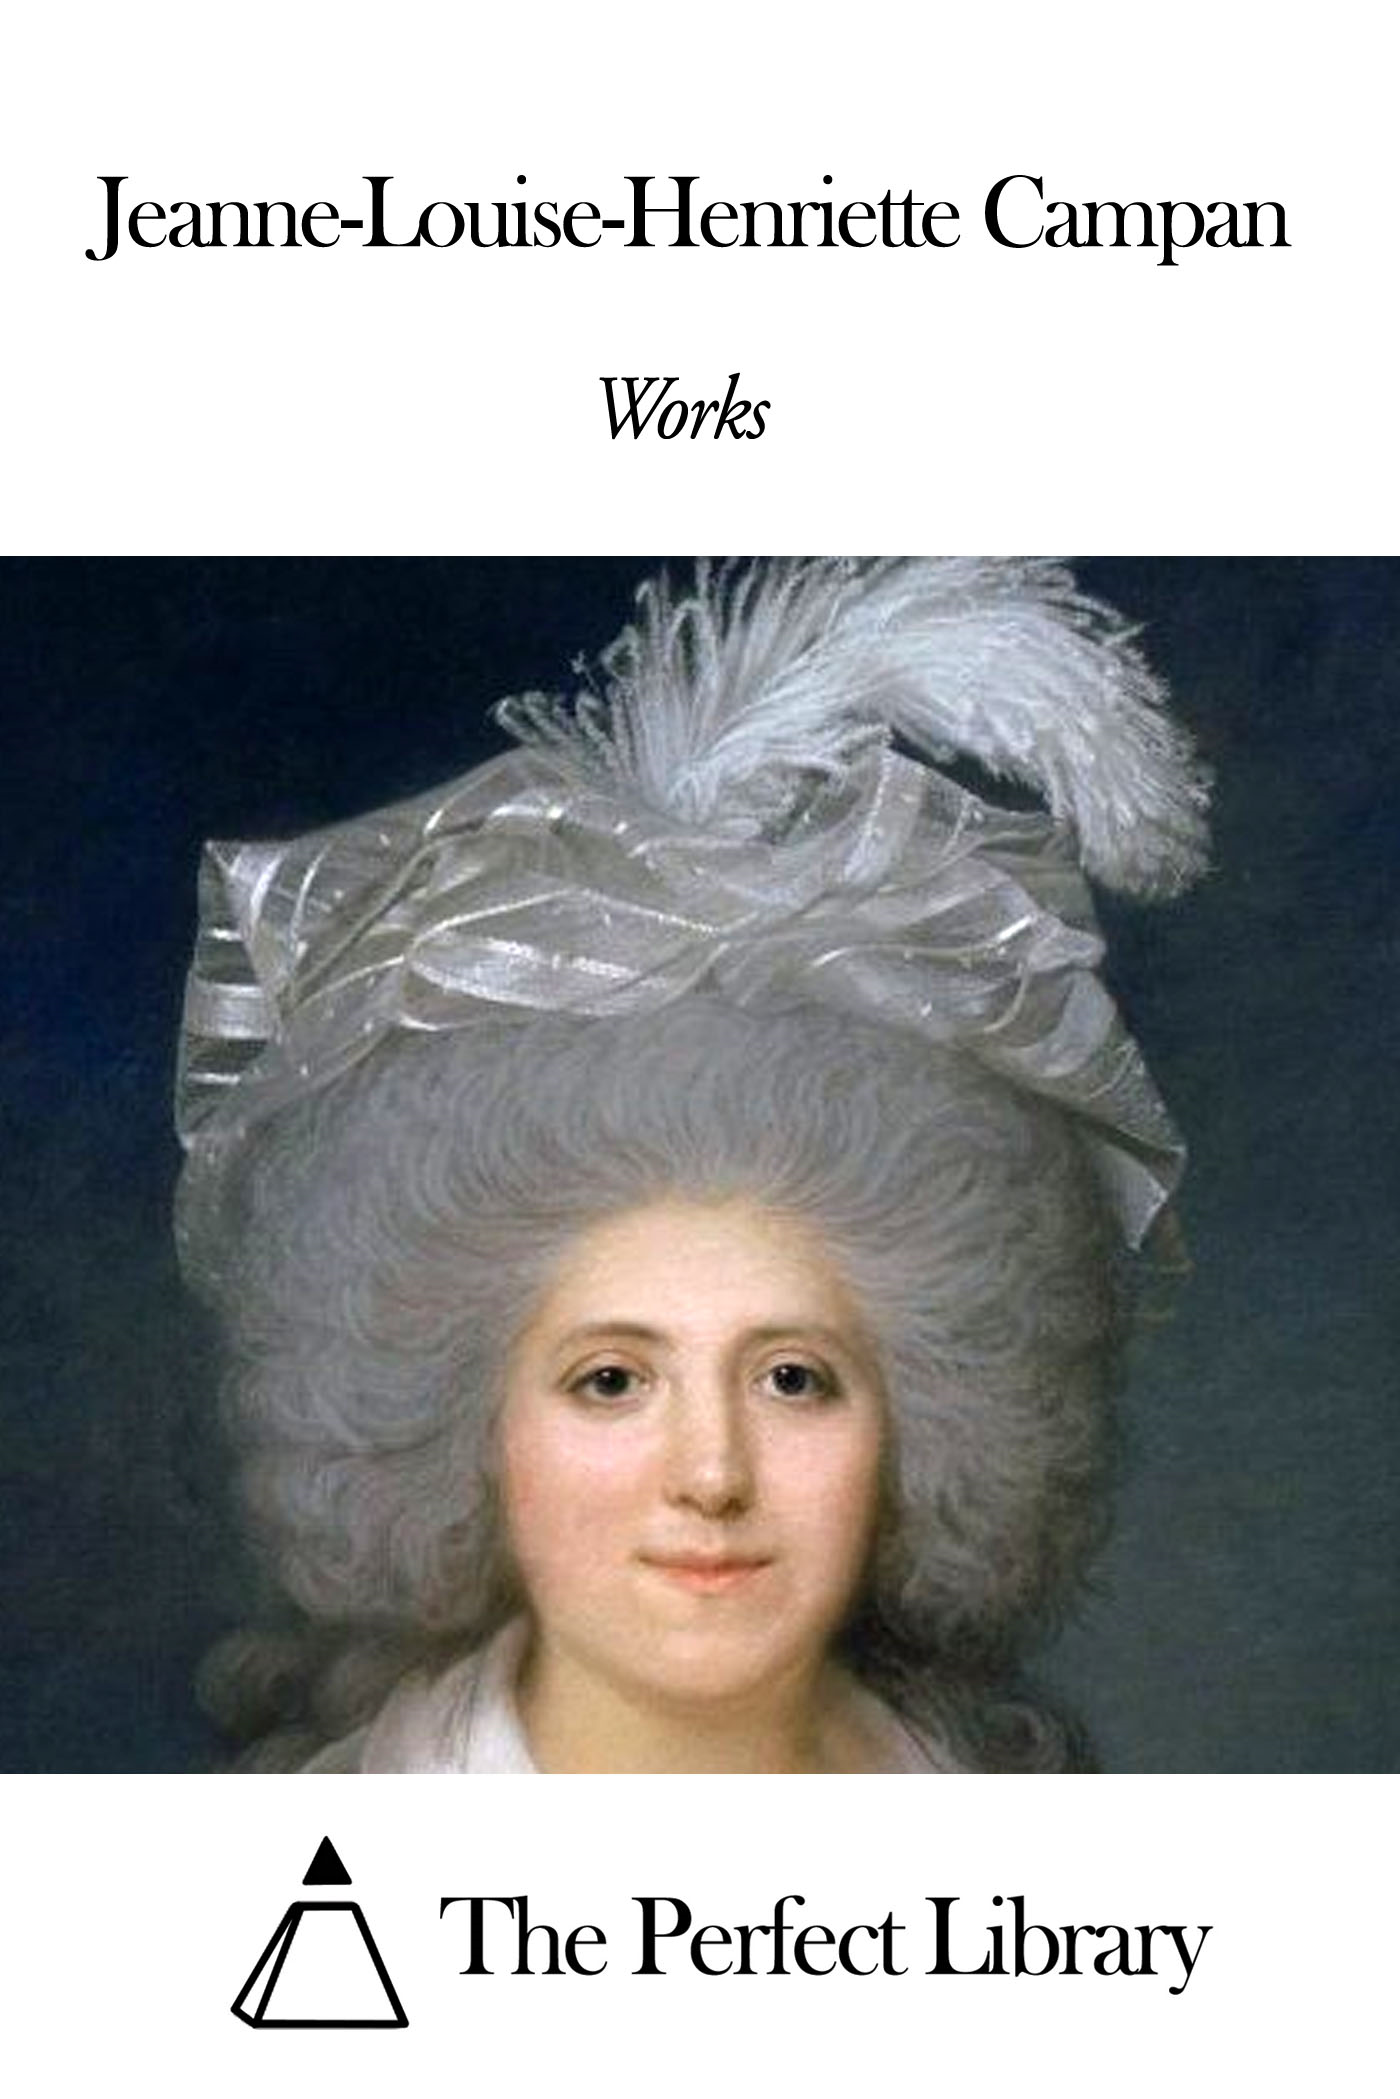 Works of Jeanne-Louise-Henriette Campan